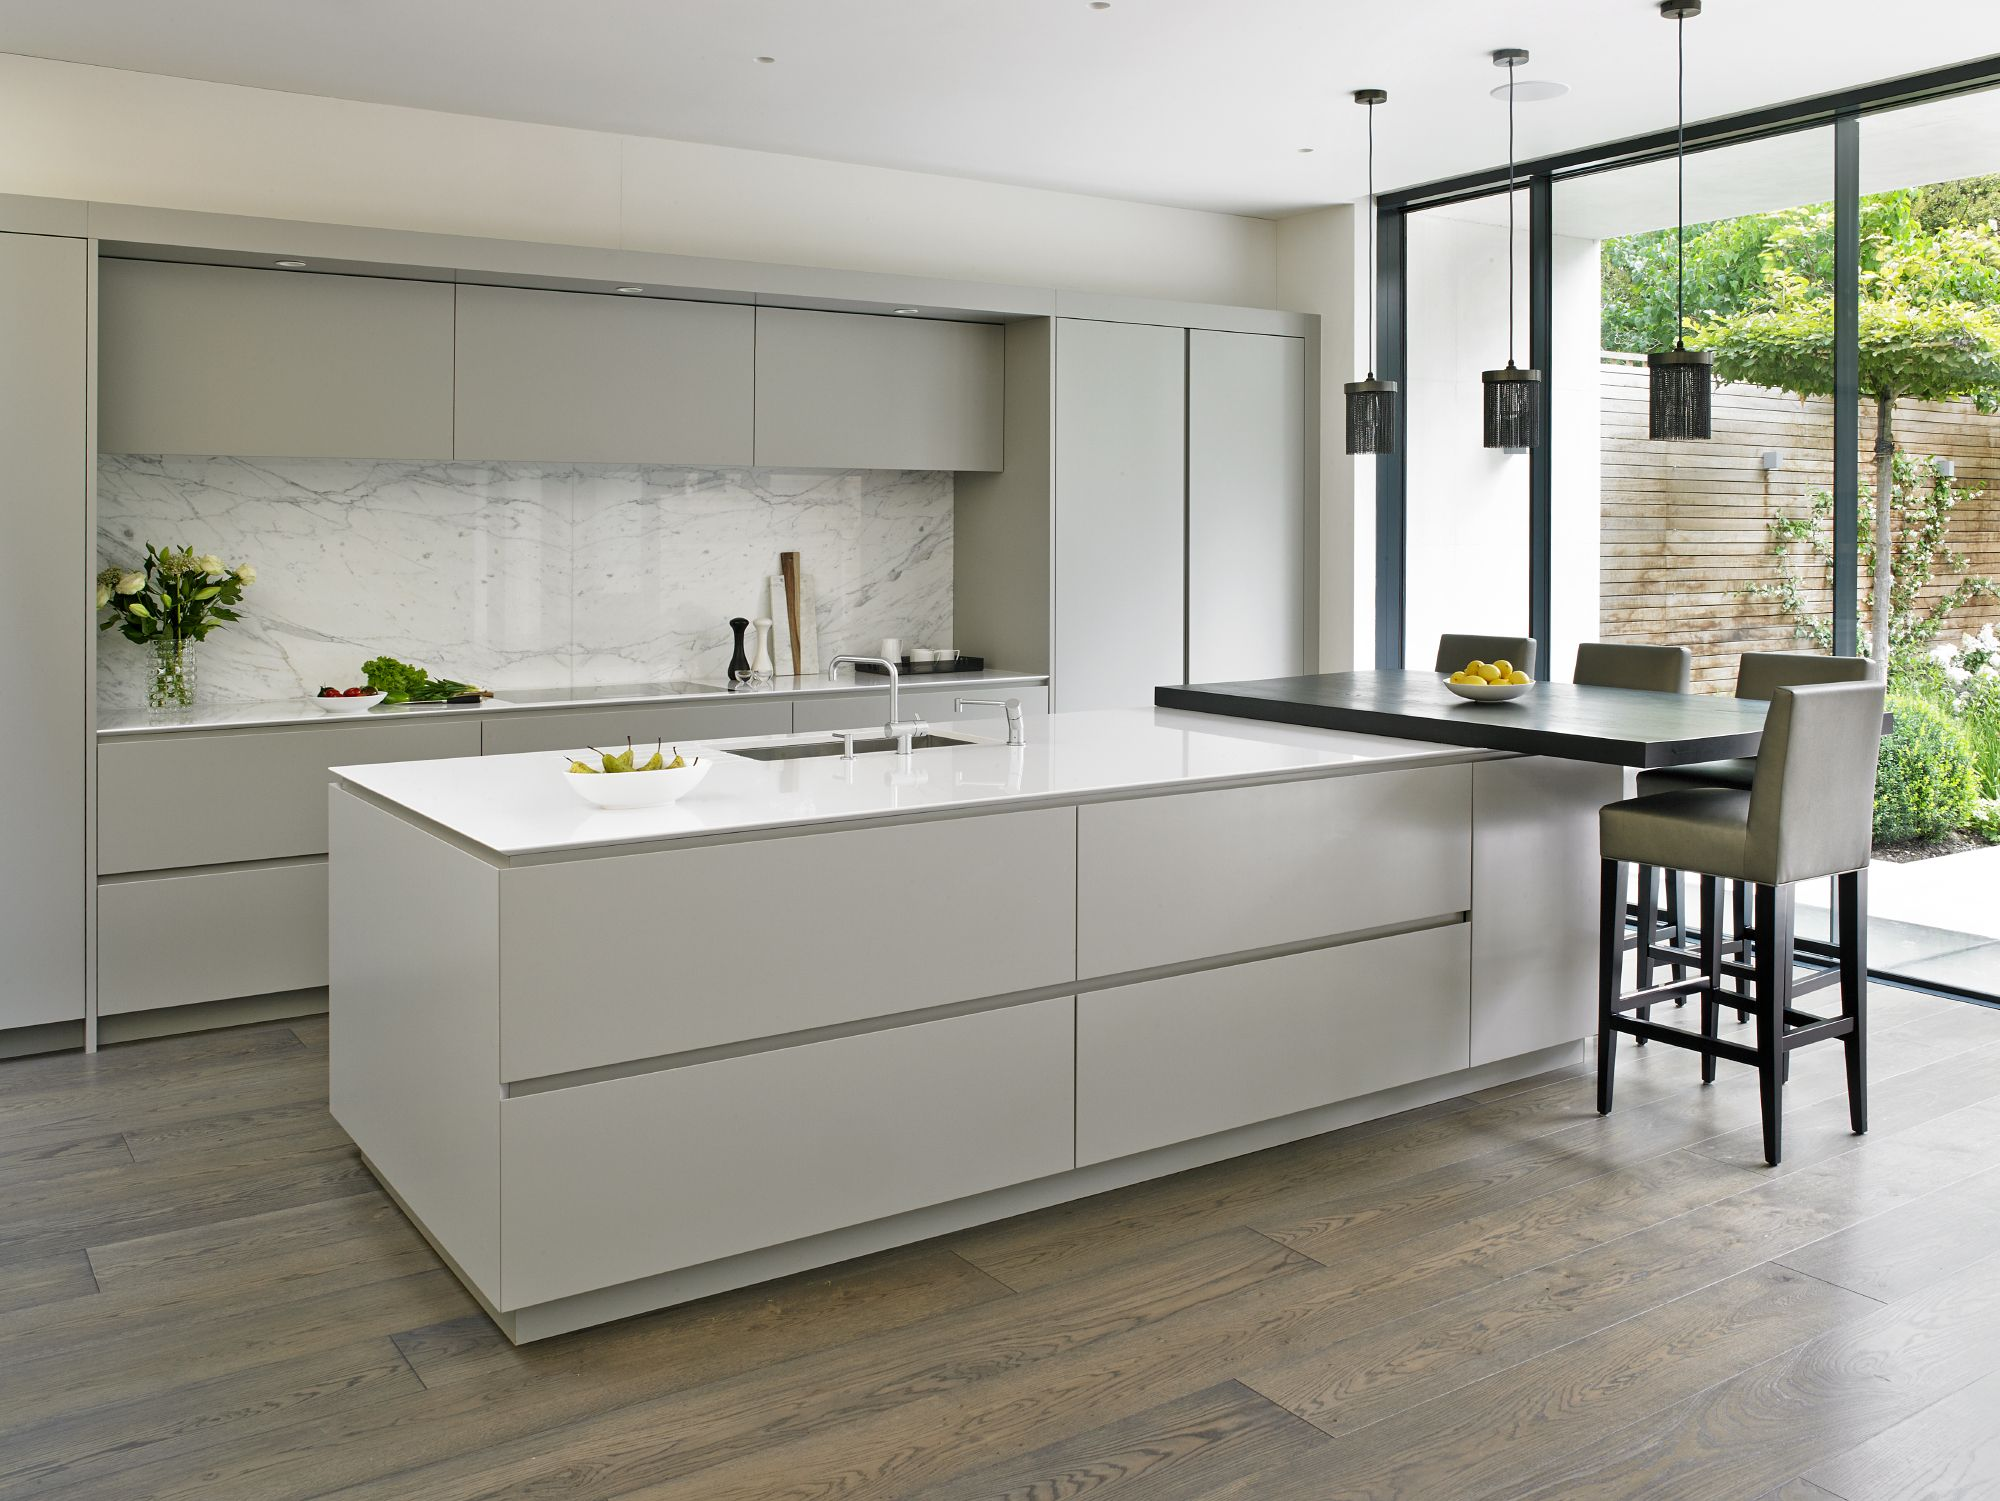 Beleuchtung Küche Pinterest Wandsworth Family Kitchen Bespoke Kitchens Sw London In